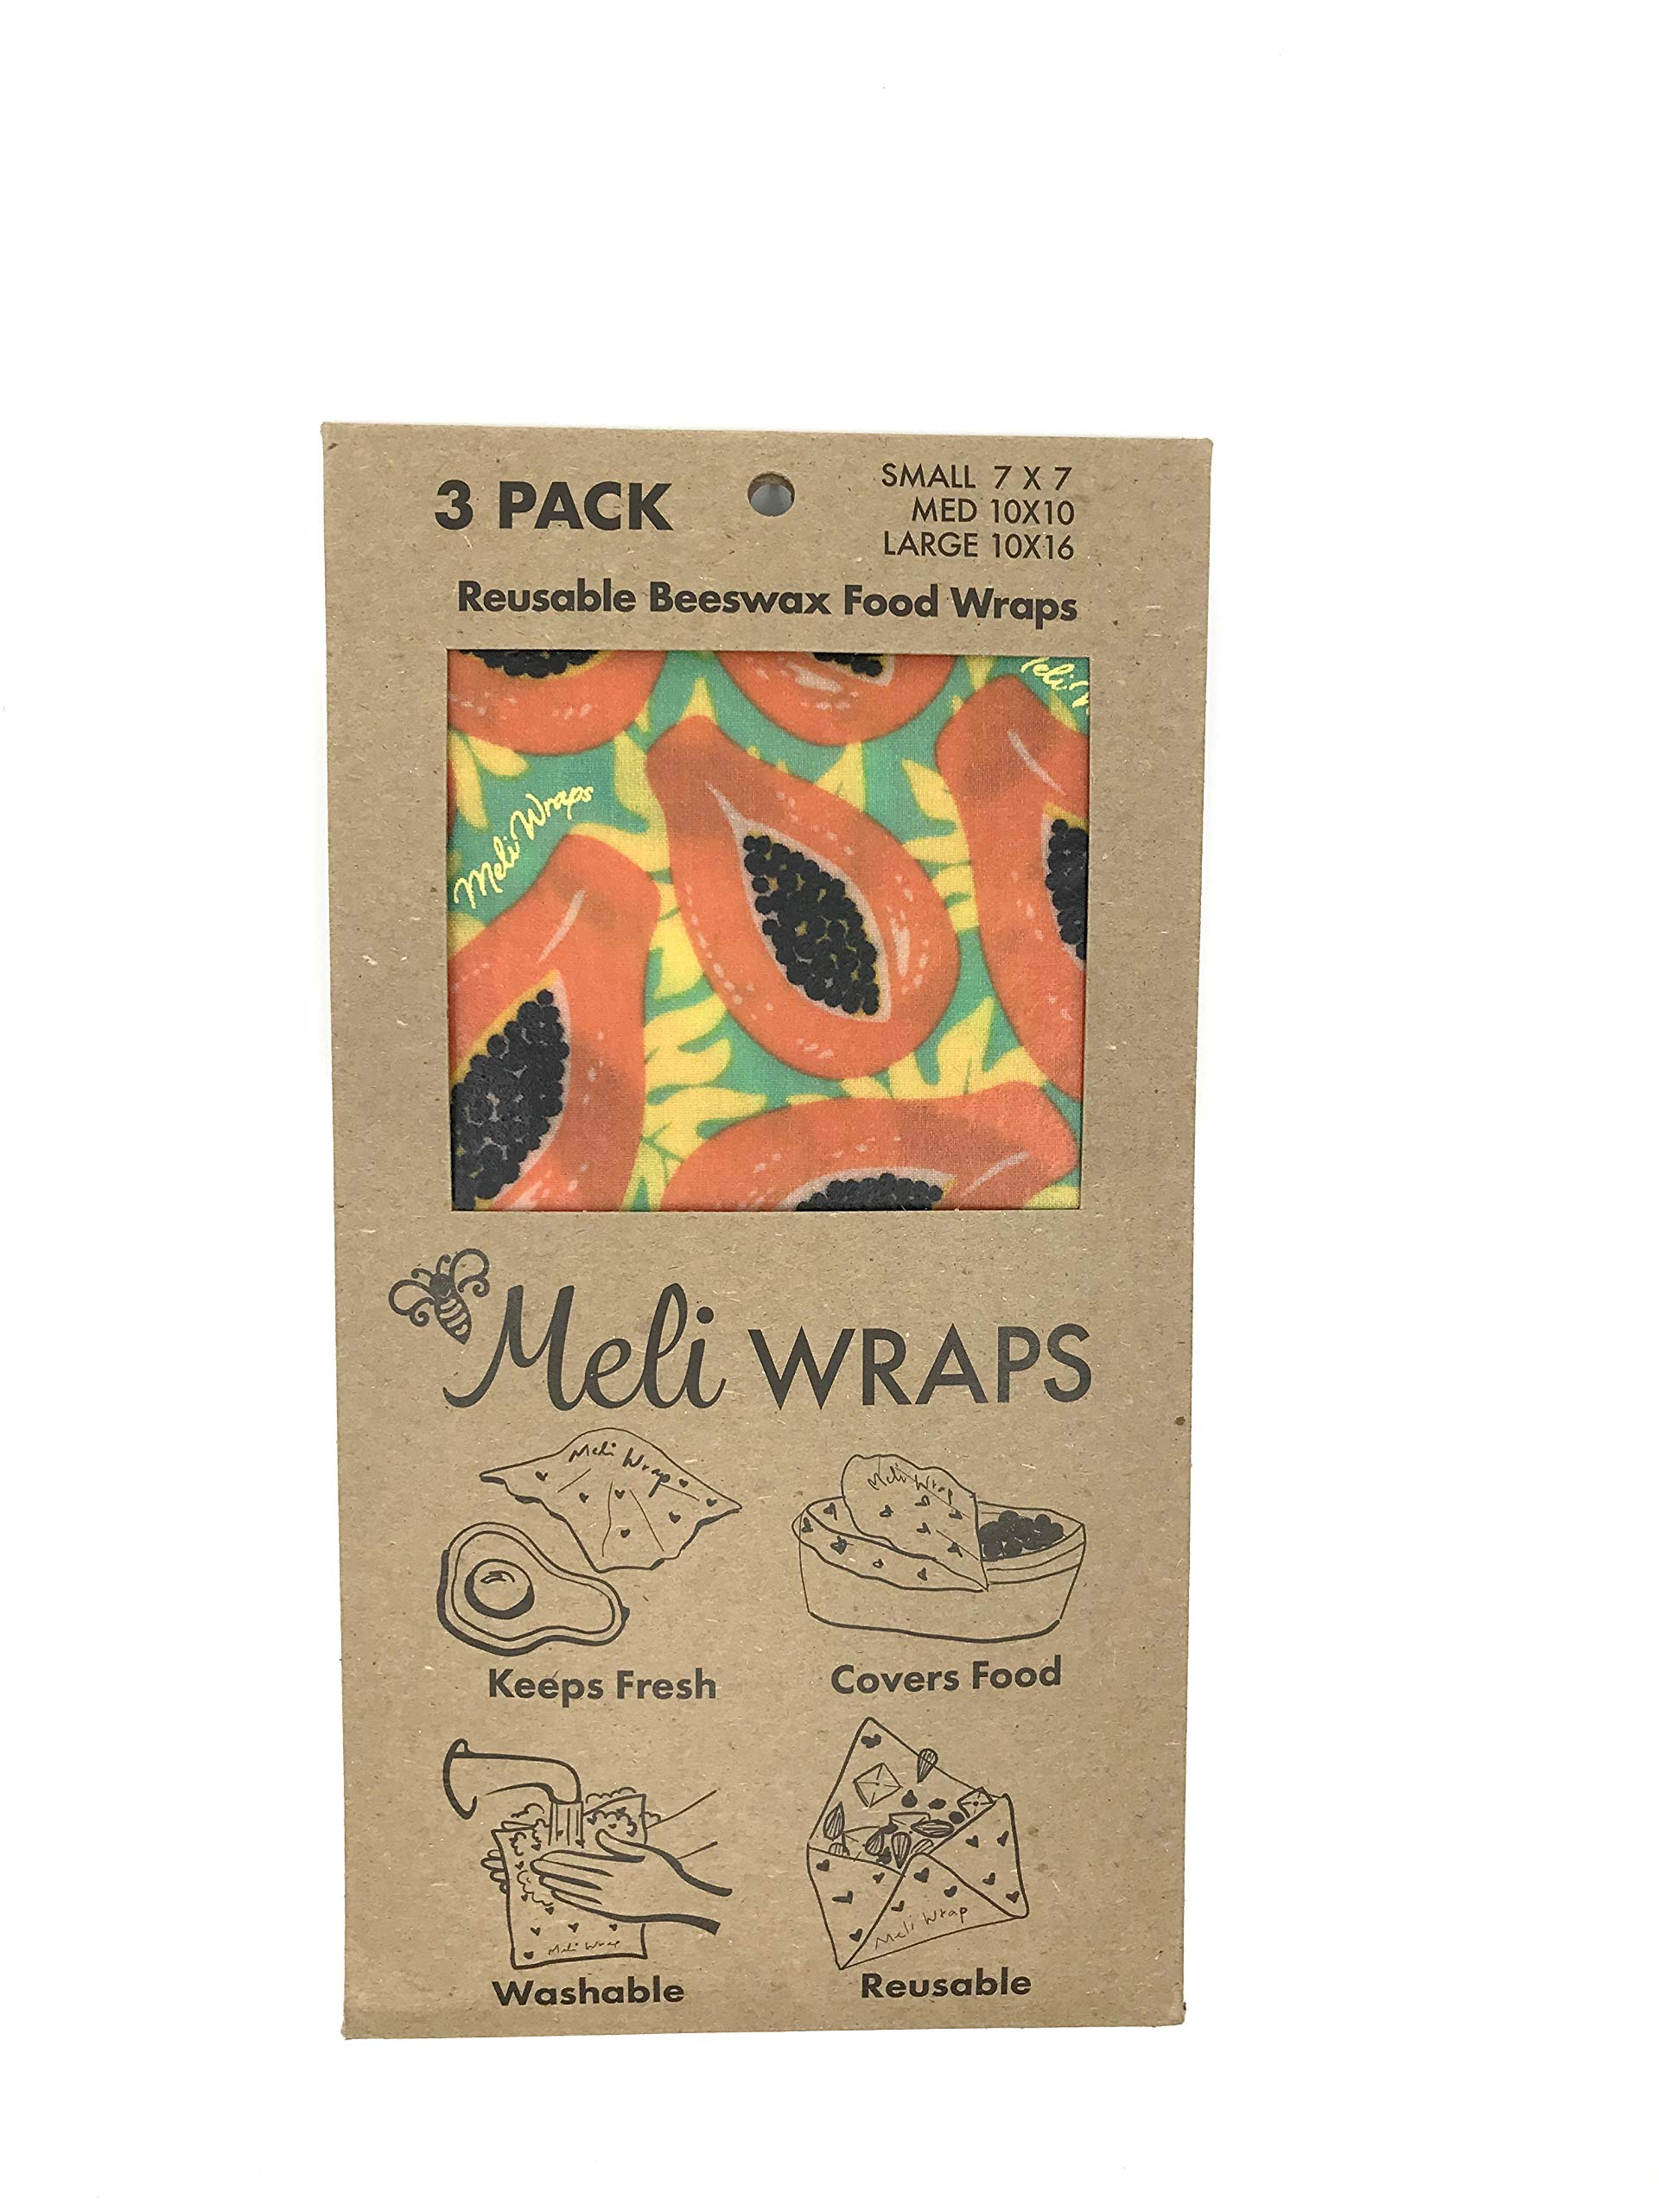 Meli Wraps Beeswax Wraps - Reusable Food Wrap Alternative to Plastic Wrap. Certified Organic Cotton, Naturally Antibacterial. 3-Pack includes sizes (SML) in Tropical Papaya Print